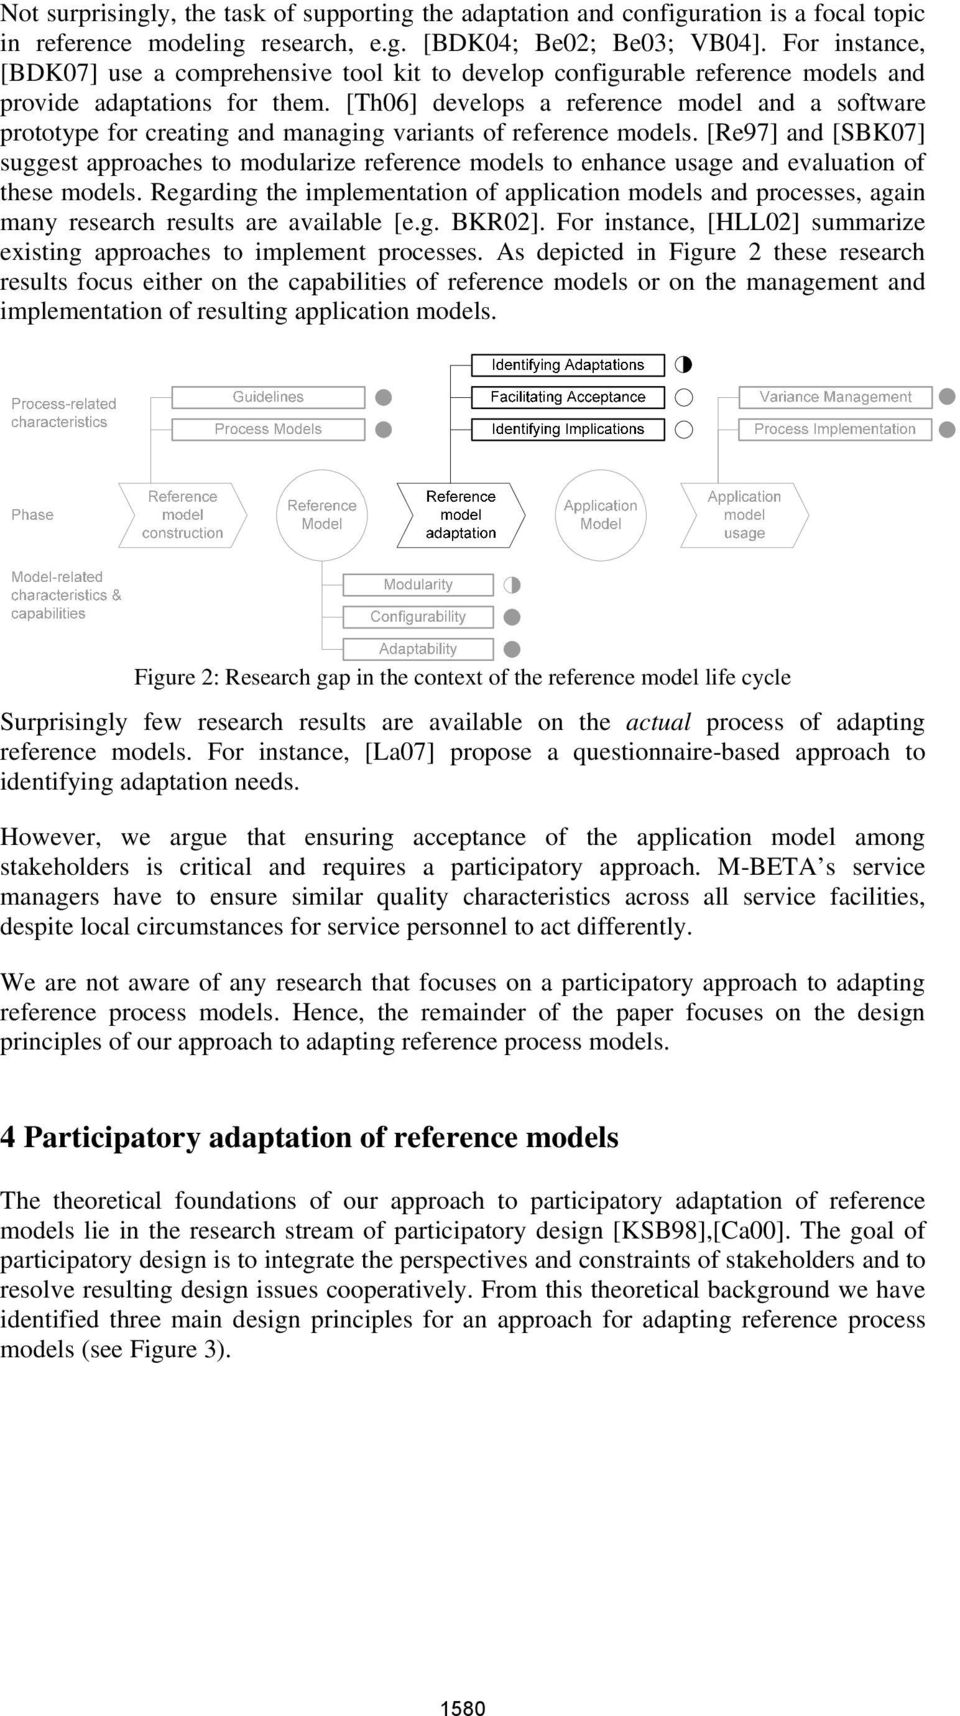 [Th06] develops a reference model and a software prototype for creating and managing variants of reference models.